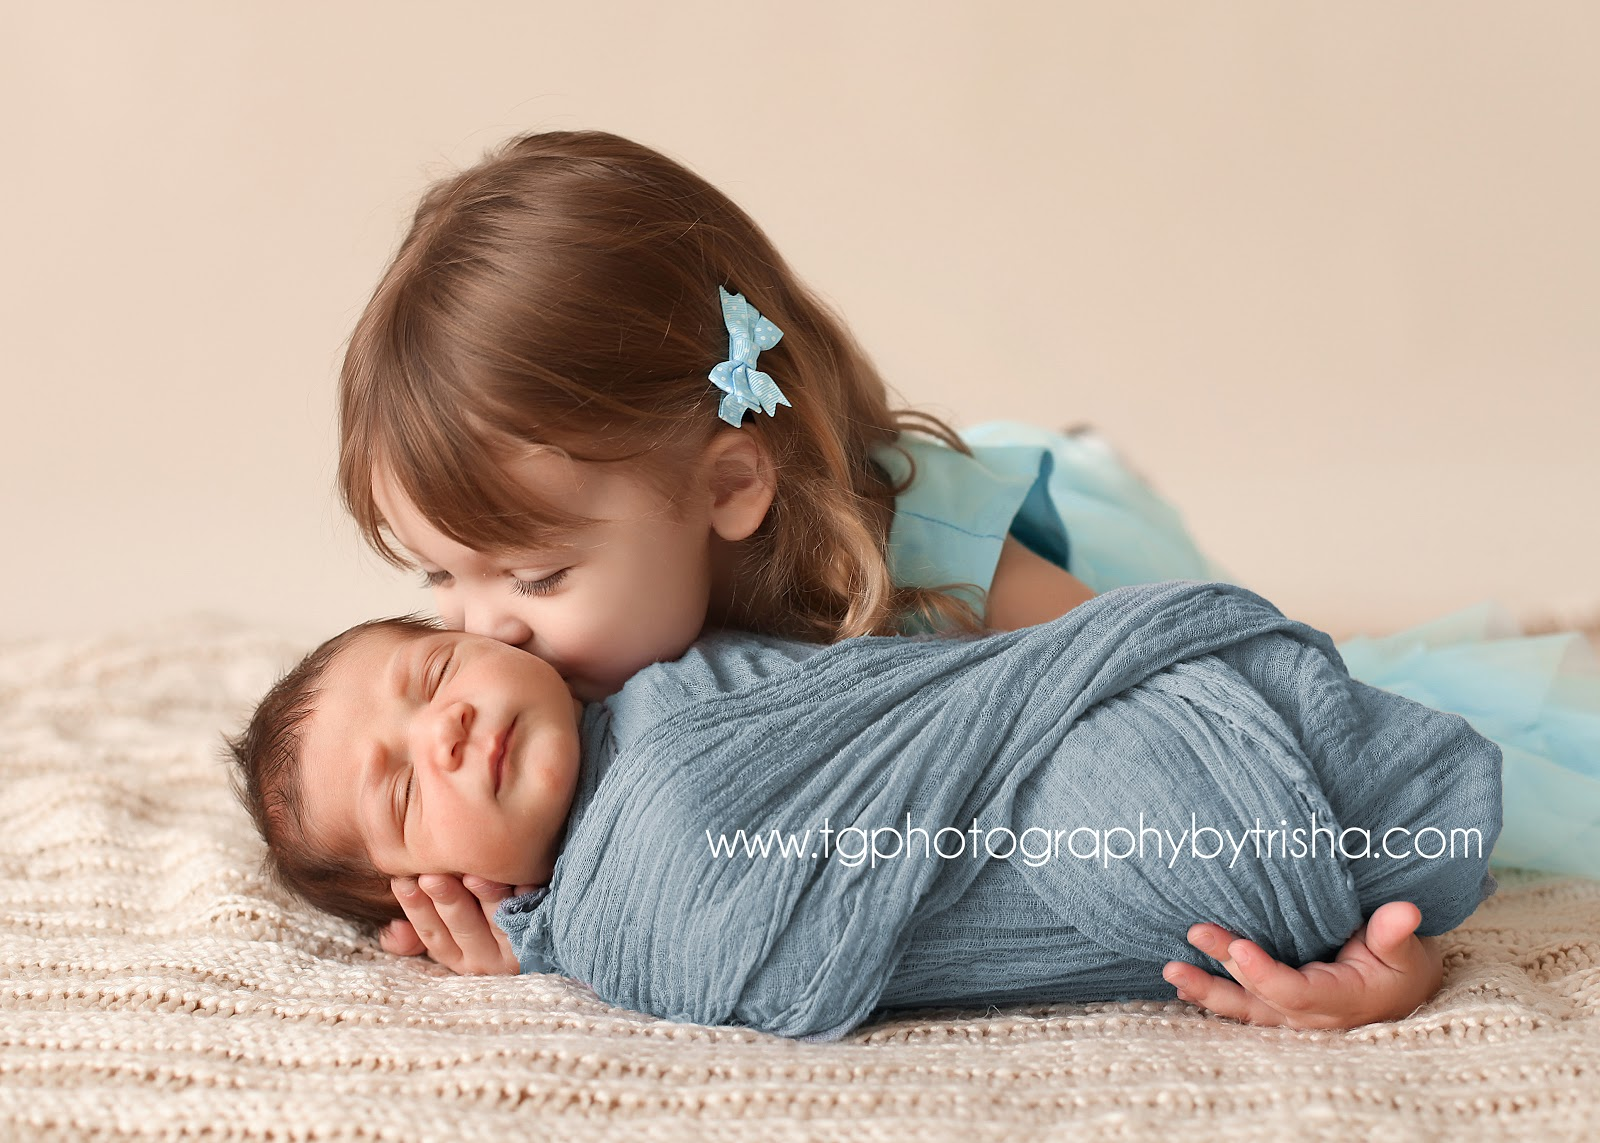 3 Girls Sibling Photo Ideas With Newborn